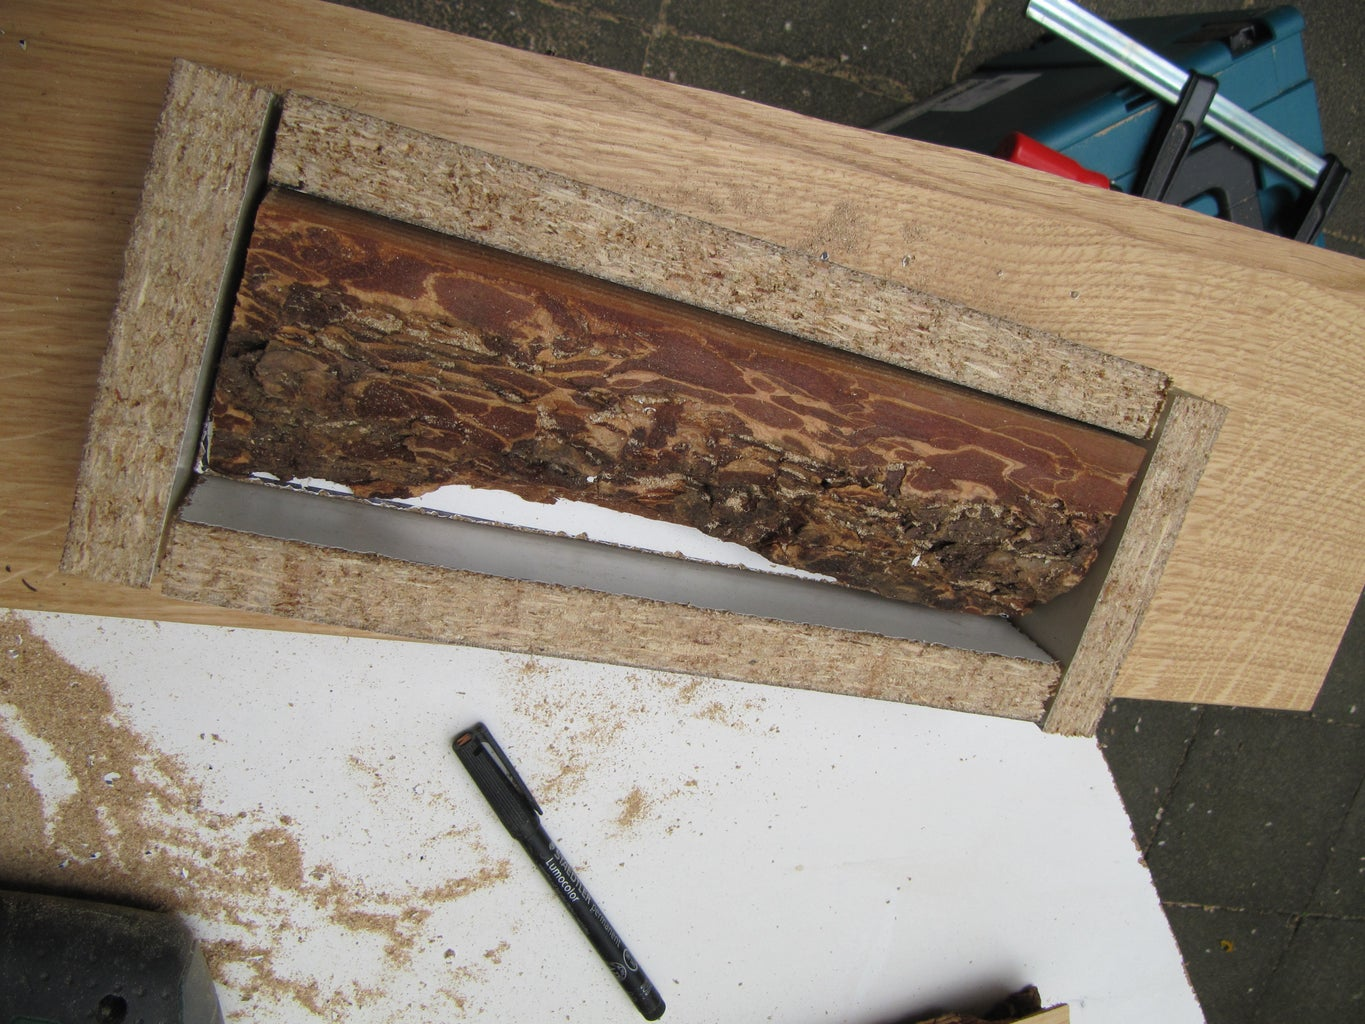 Build the Casting Mould for the Resin